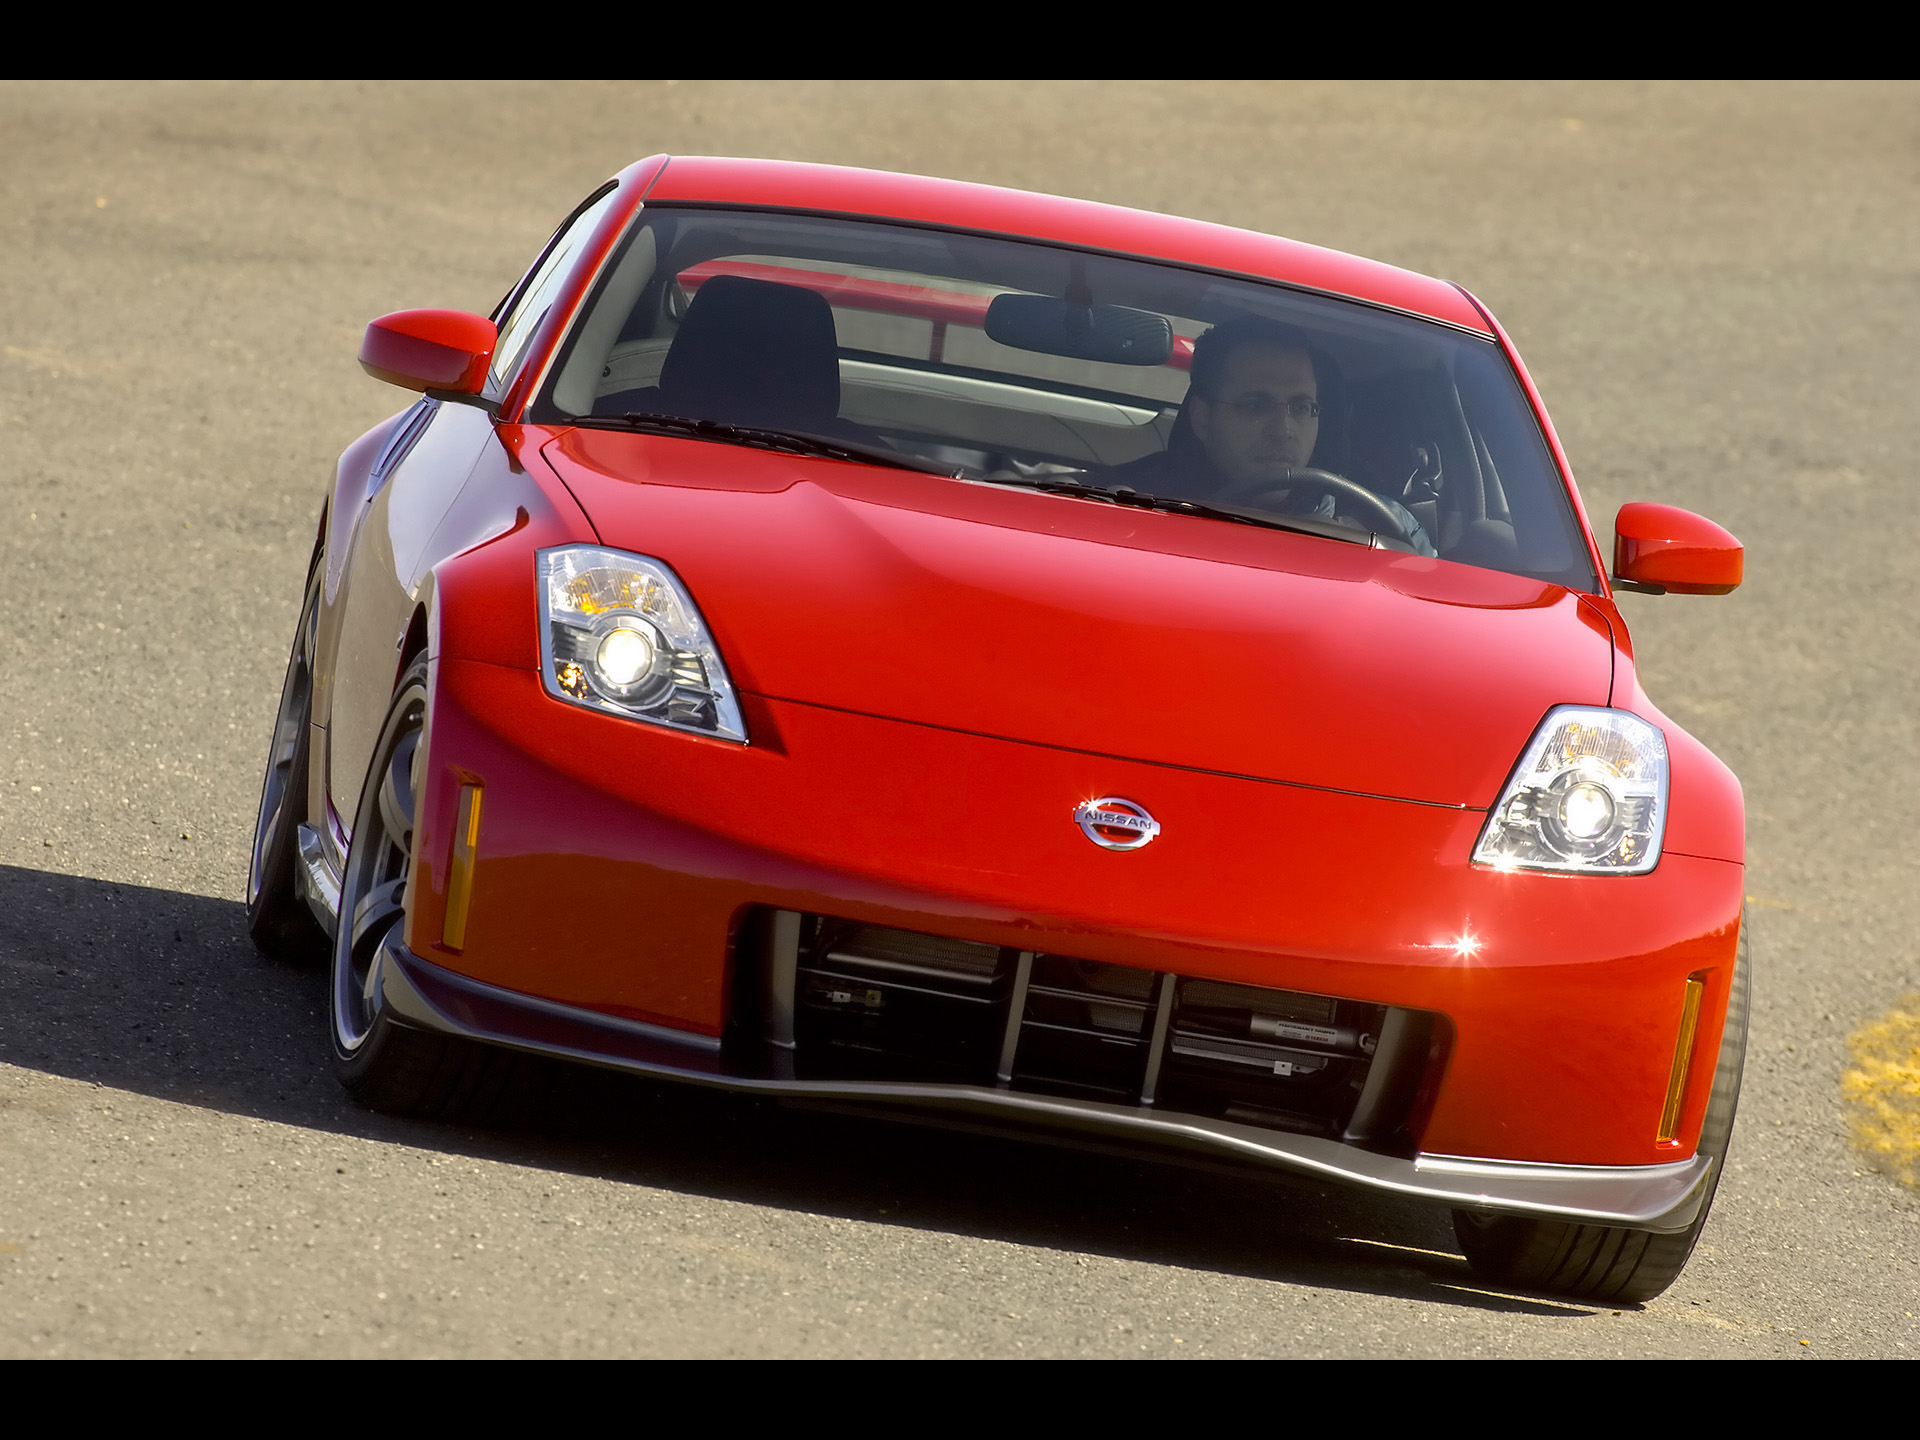 nissan nismo 350z picture 43092 nissan photo gallery. Black Bedroom Furniture Sets. Home Design Ideas